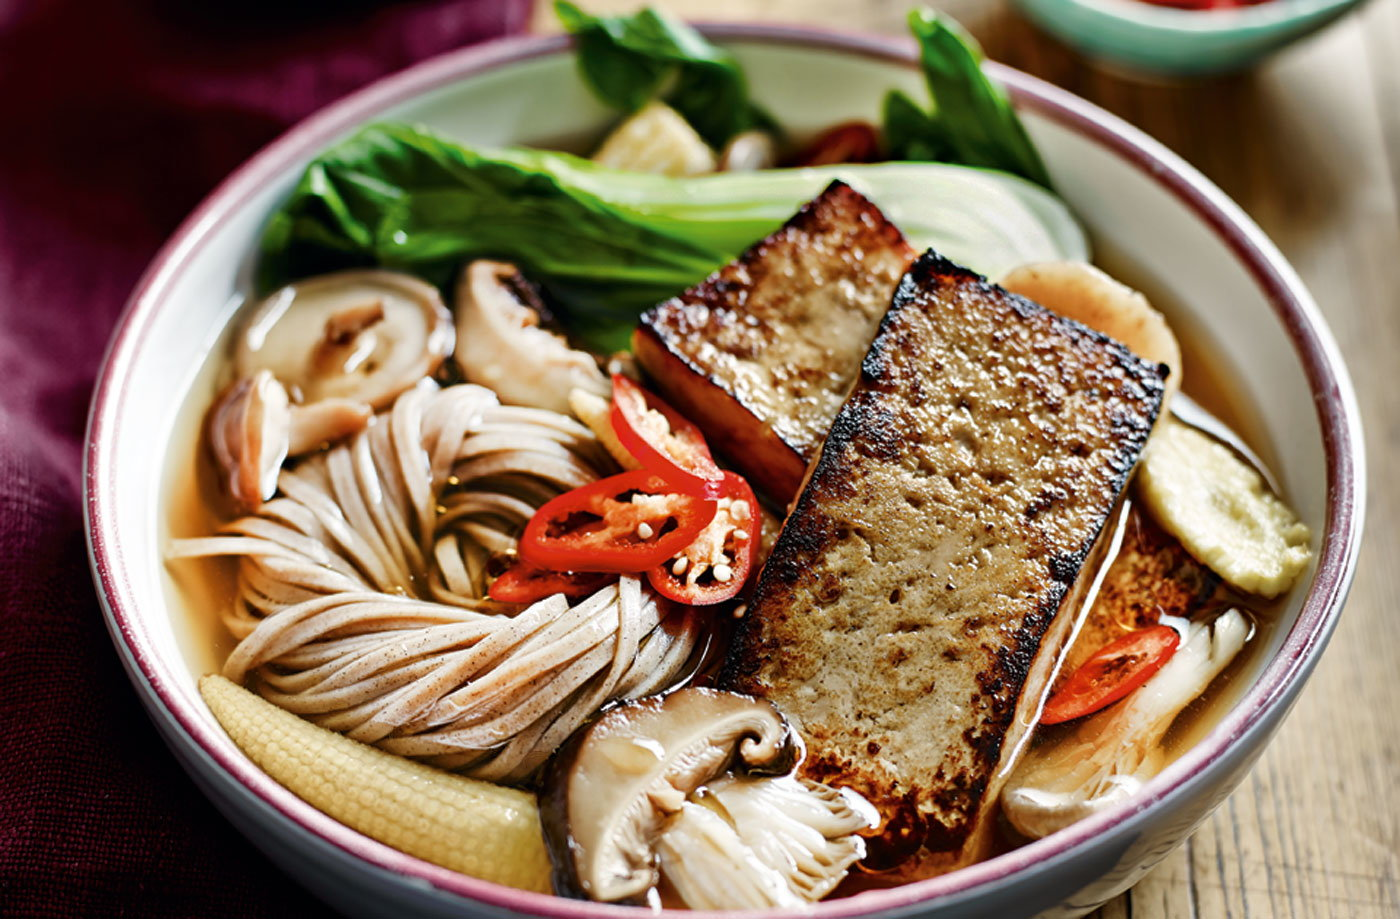 Marinated tofu and vegetable ramen